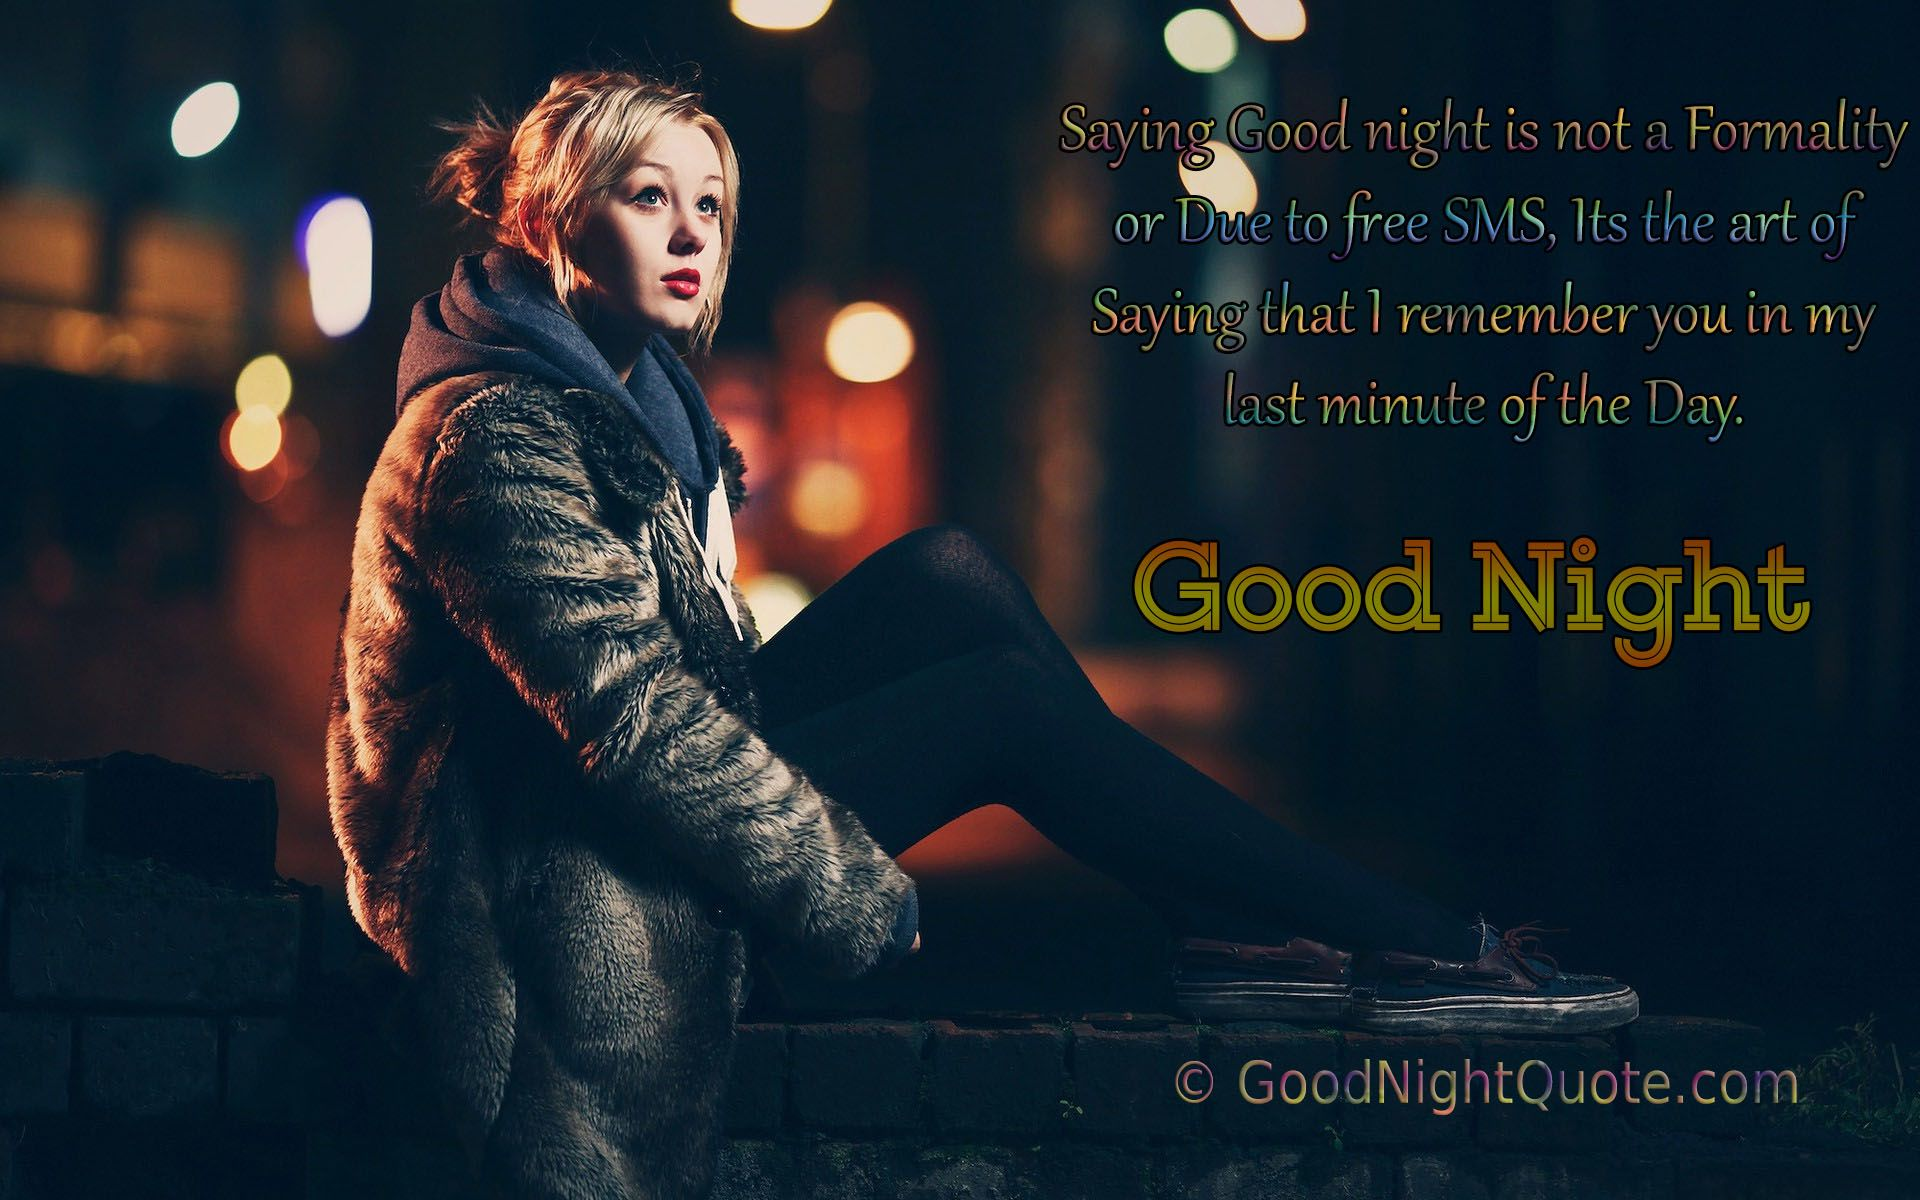 I Remember You In My Last Minute Of The Day Good Night Friends Images Good Night Messages Good Night Quotes